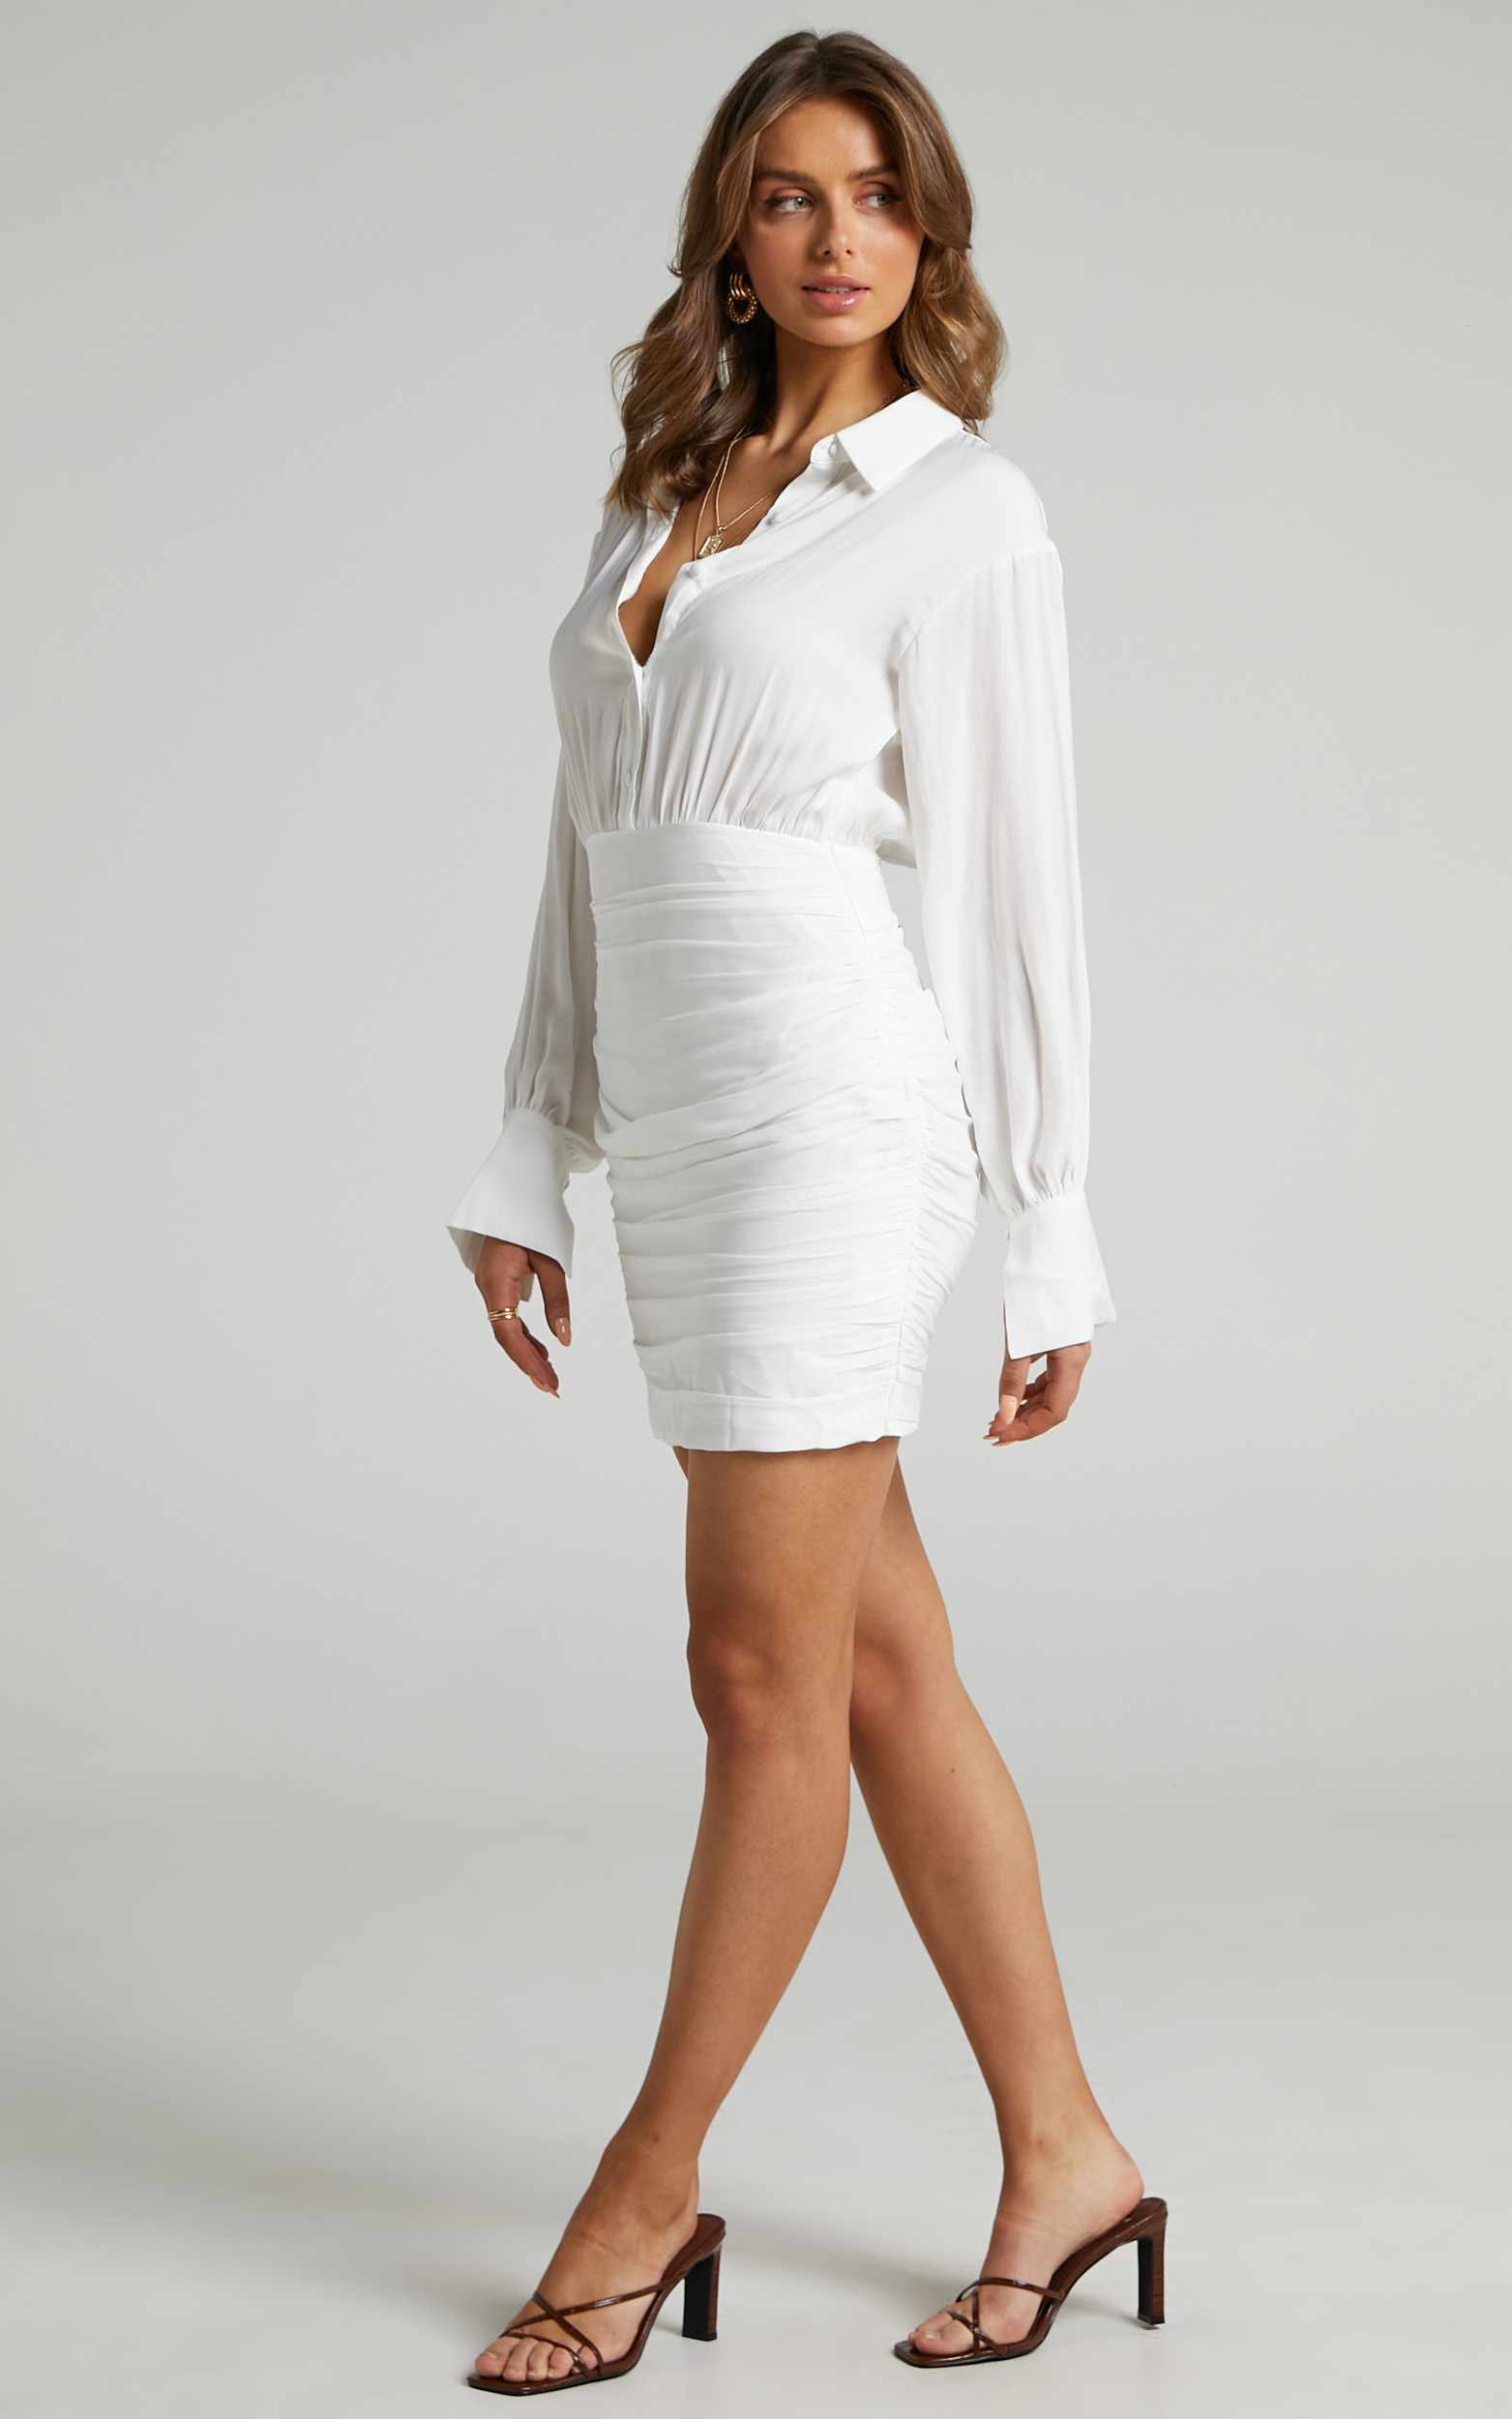 Kansy Shirt Dress in White - 06, WHT1, hi-res image number null